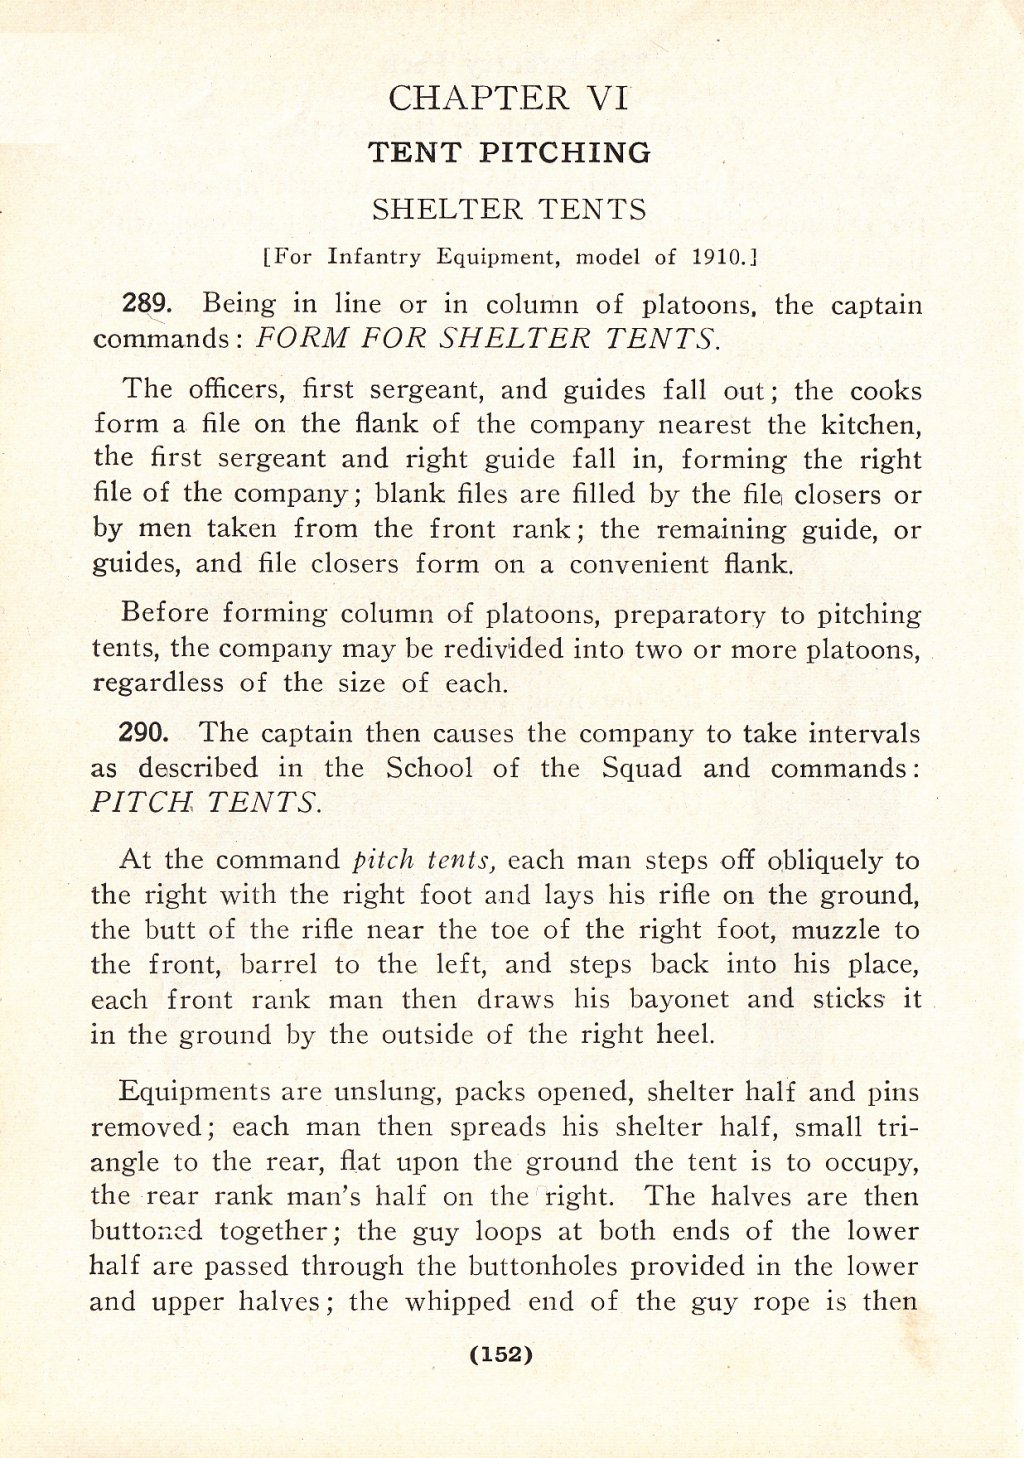 314th Infantry Regiment - Infantry Soldiers Handbook - Waldron - Page 152